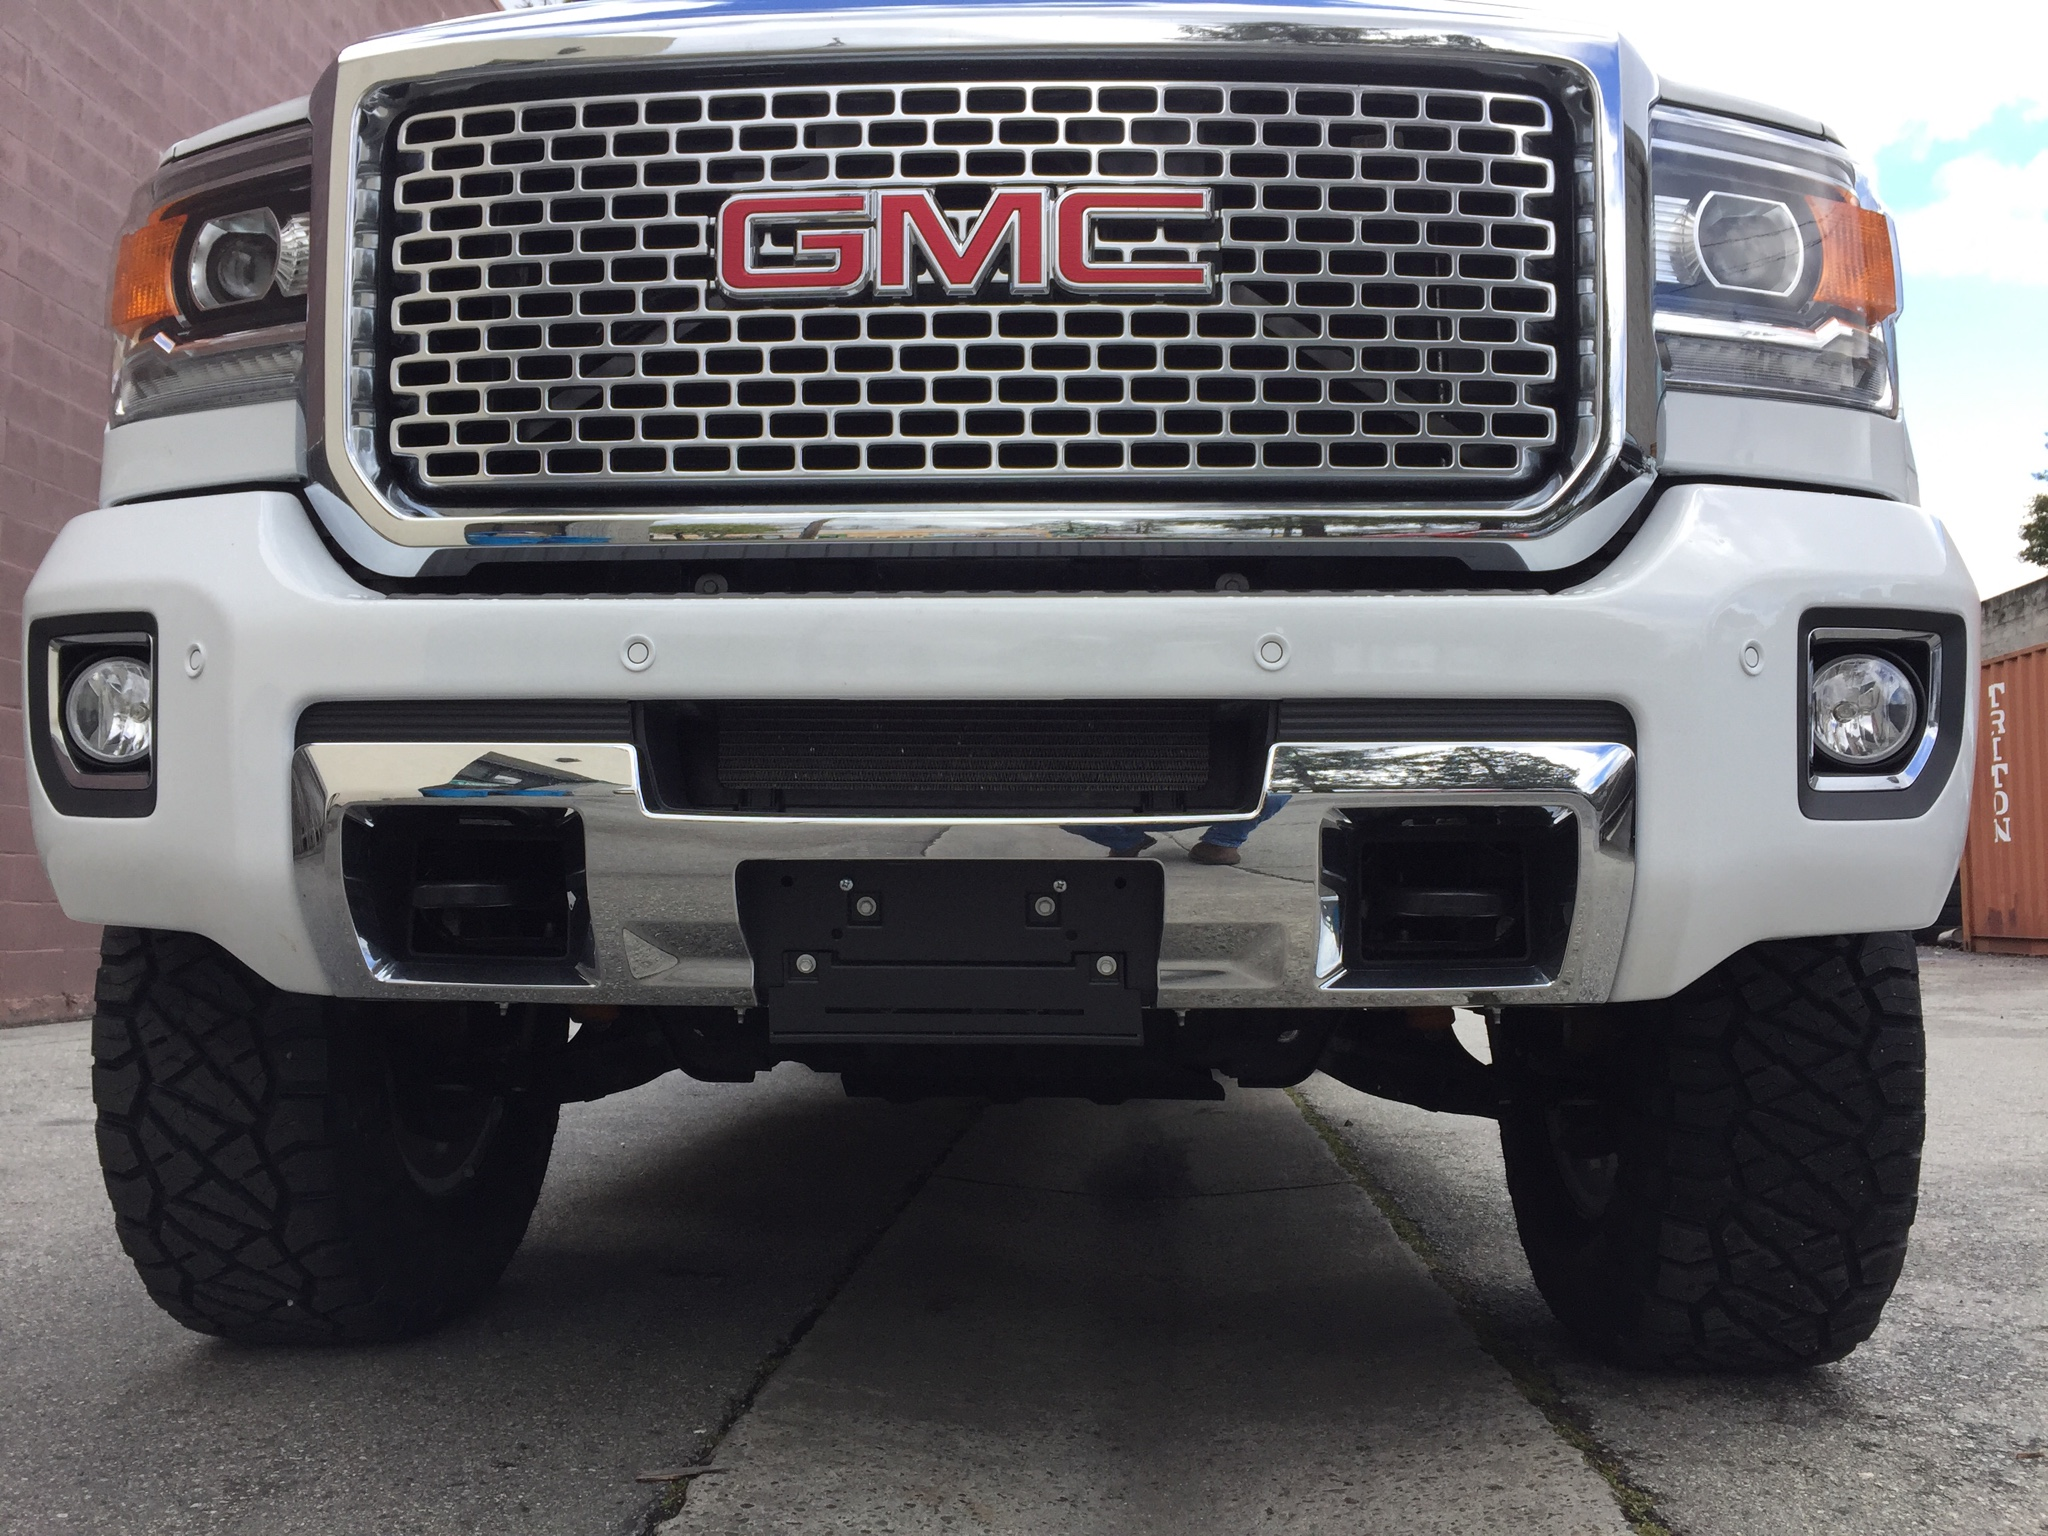 2016 Gmc Denali 2500 >> 2016-17 35s with Leveling Kit only - Page 3 - Chevy and GMC Duramax Diesel Forum